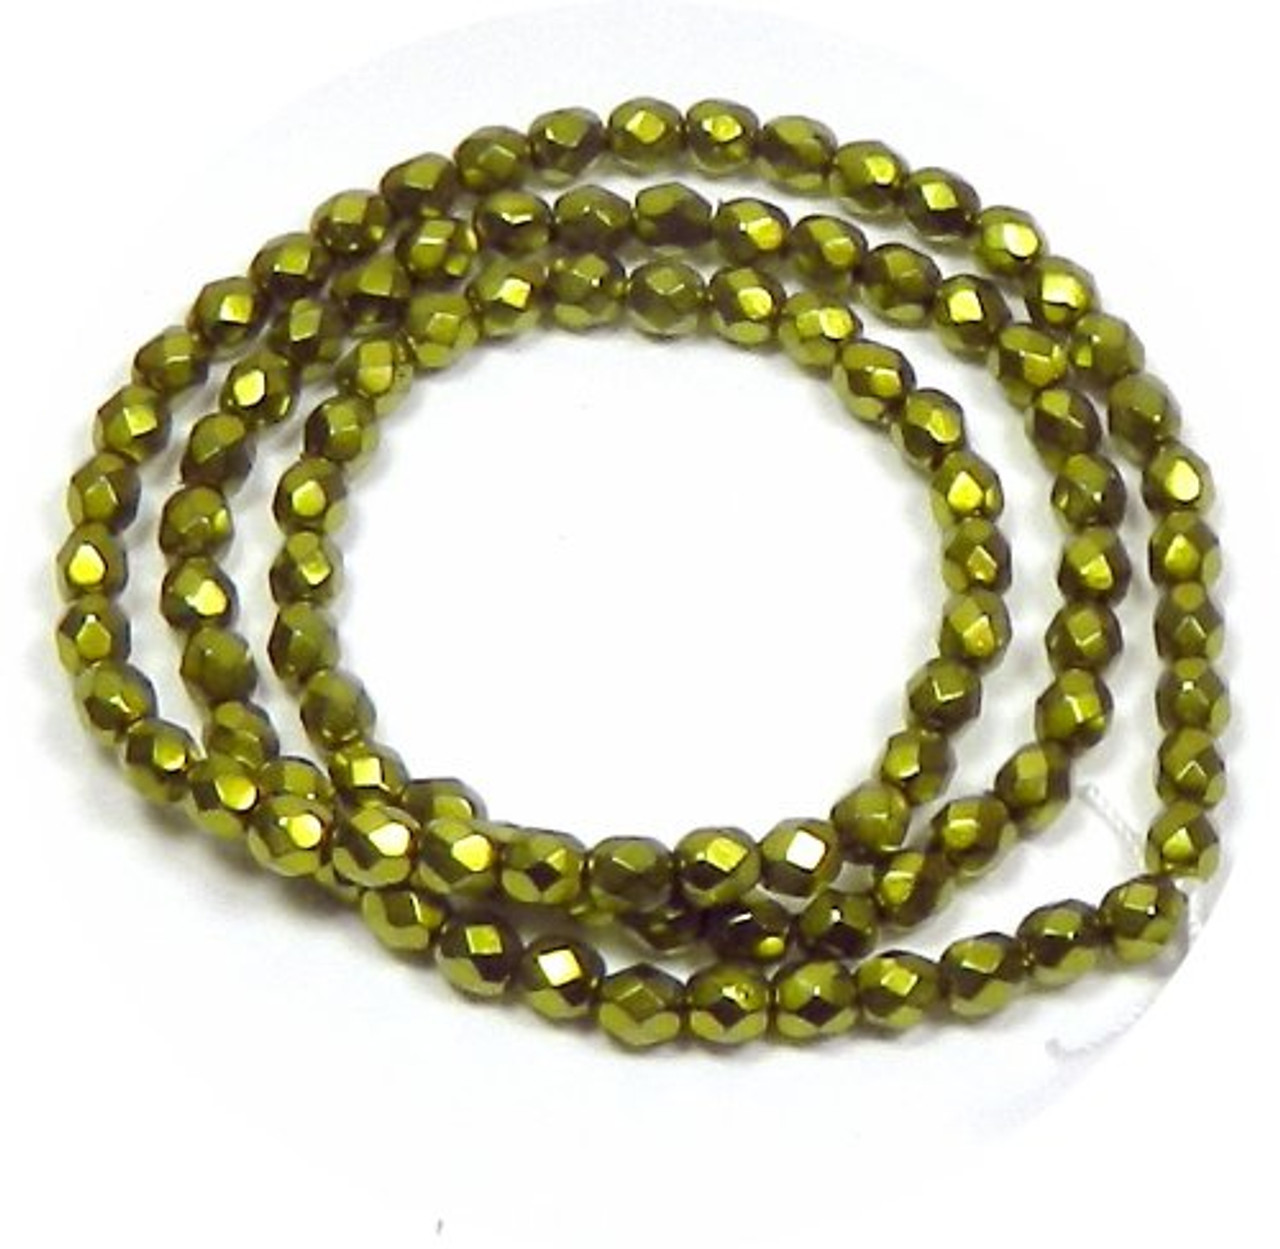 Faceted Pearls Czech Glass Fire Polished Beads in Green Carmen Metallic Pearl